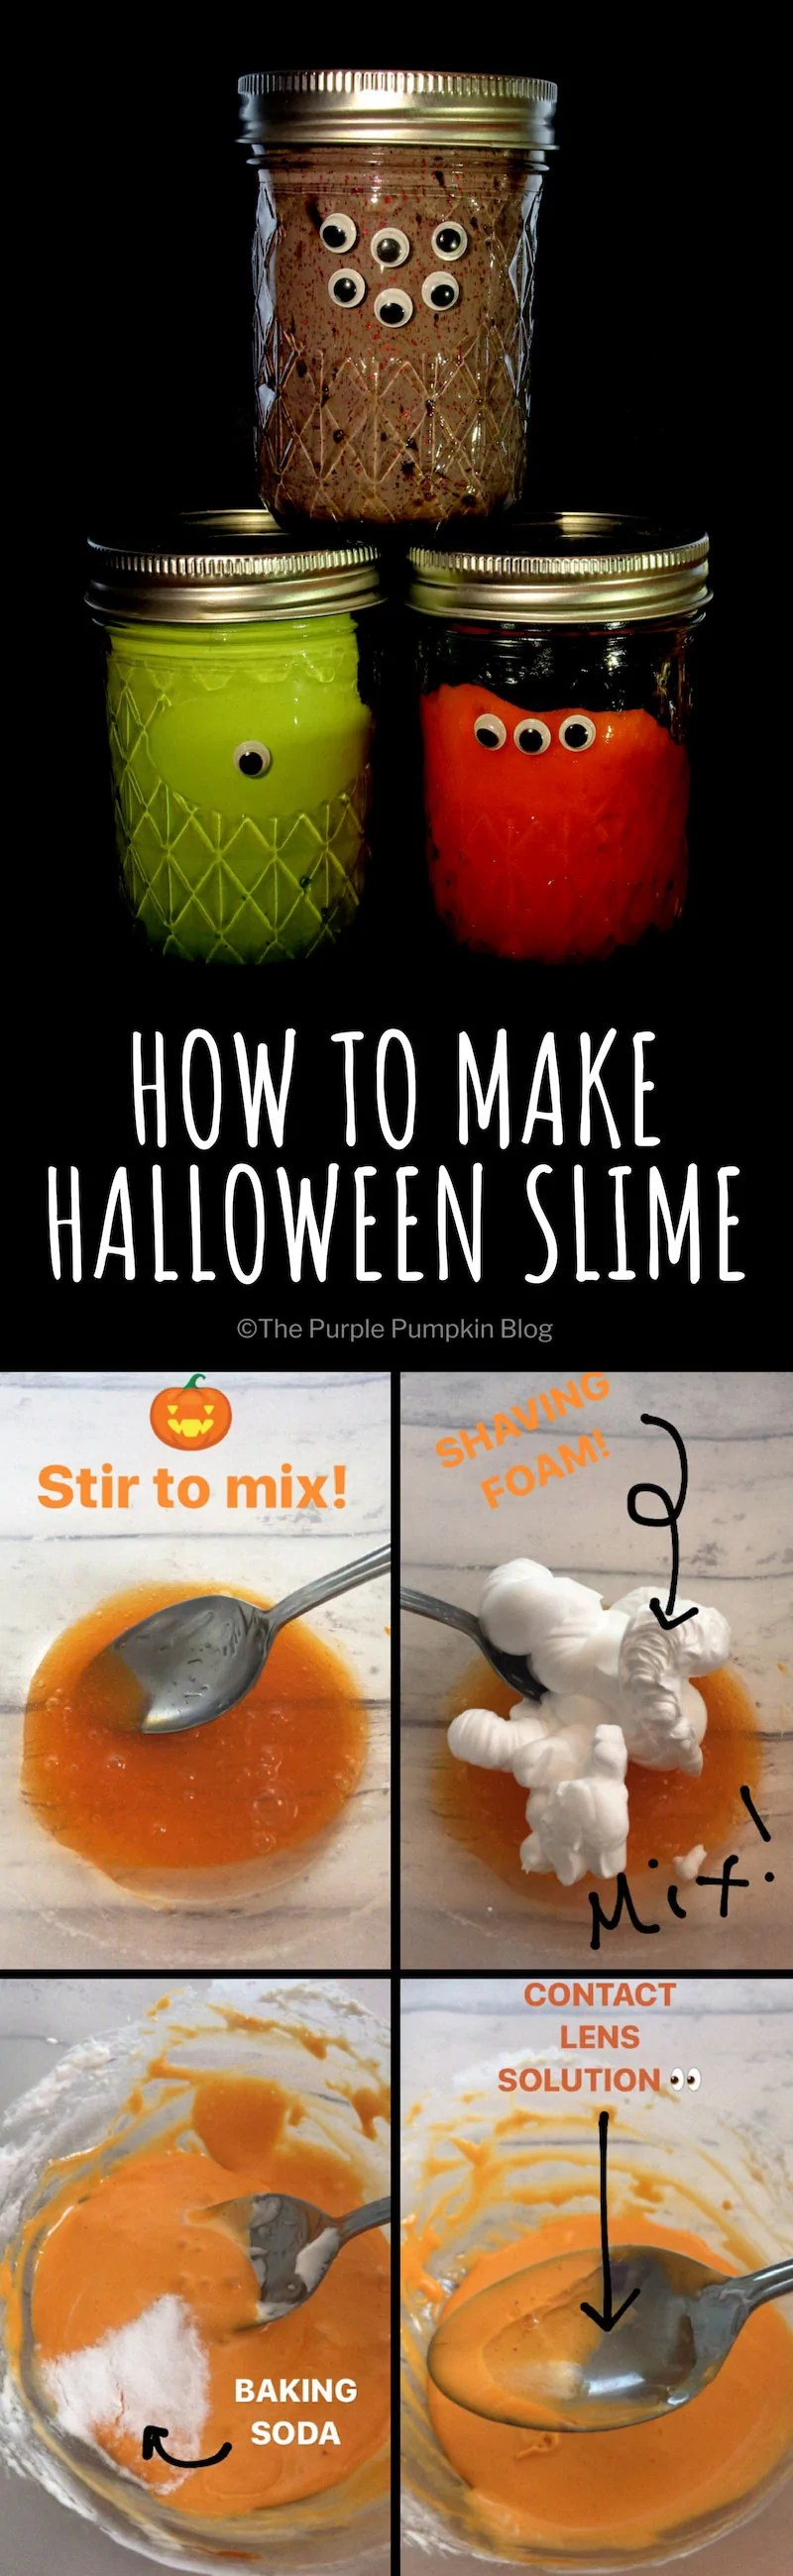 How To Make Halloween Slime! This ooey-gooey Halloween Slime is easy to make a fun to play with! Most of the ingredients can be found at home - shaving foam, white PVA/Elmers Glue, glitter, food colouring, bicarbonate of soda/baking soda, and contact lense solution. Adult supervision required for kids.